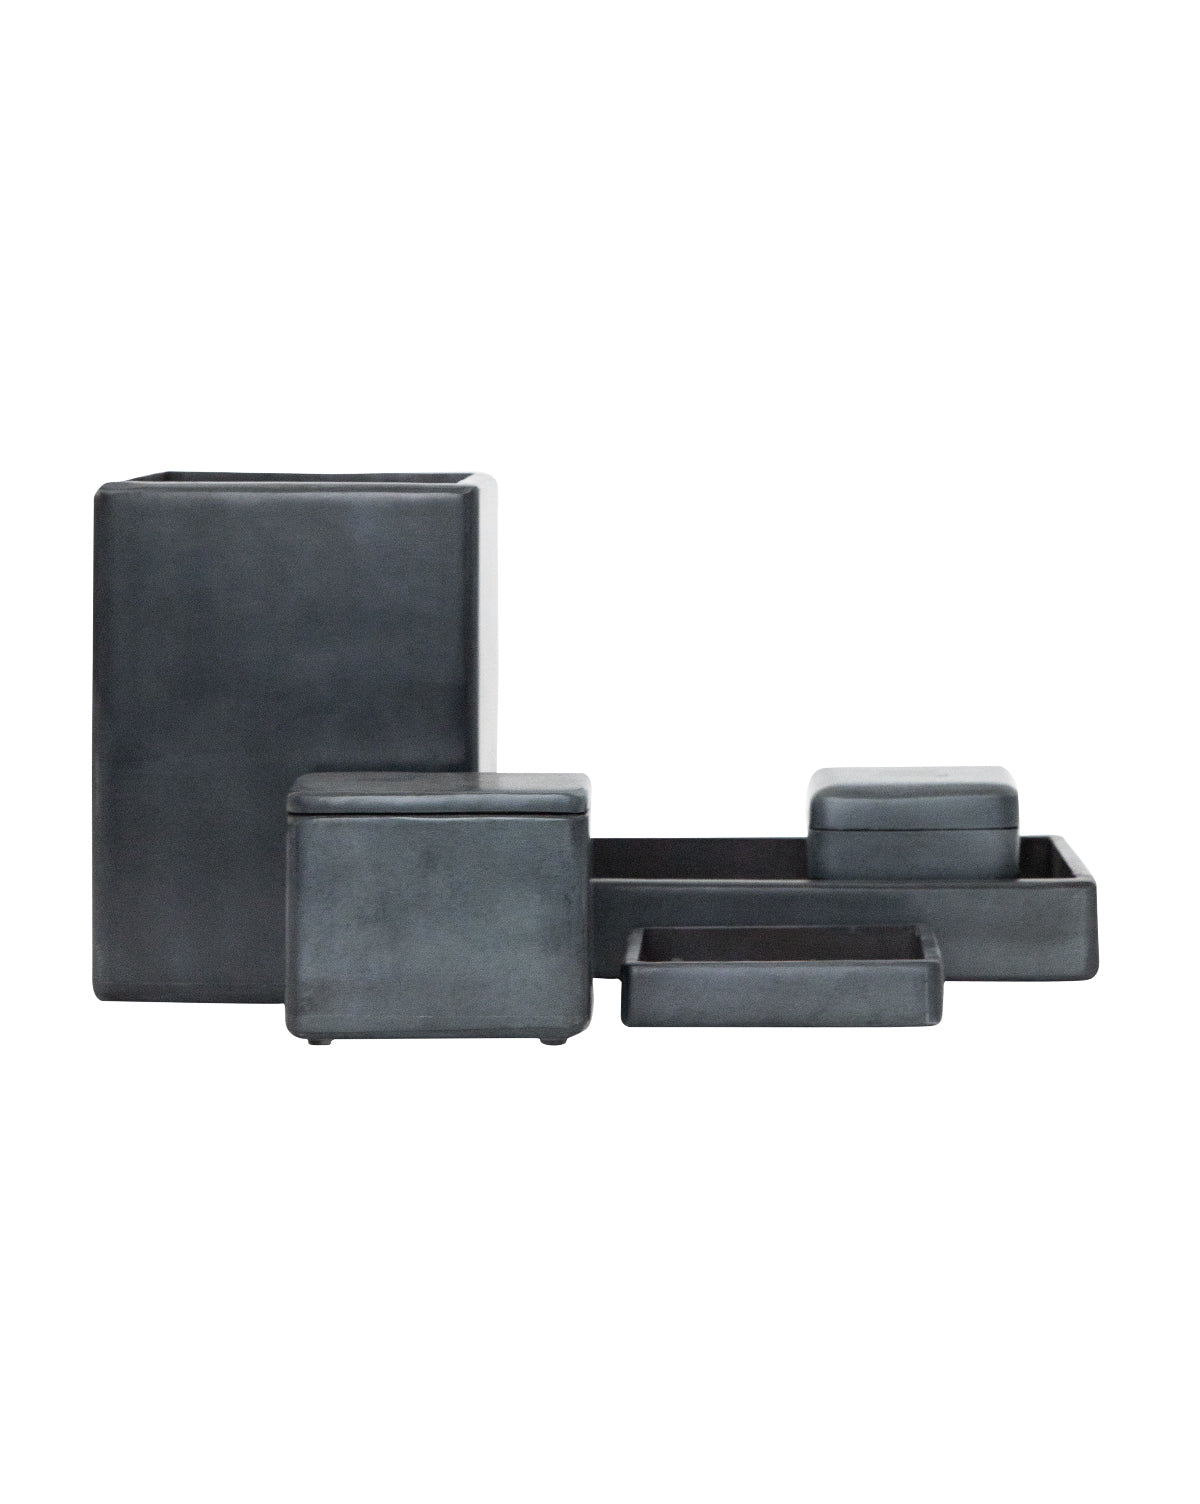 Olinda Soapstone Bath Accessories